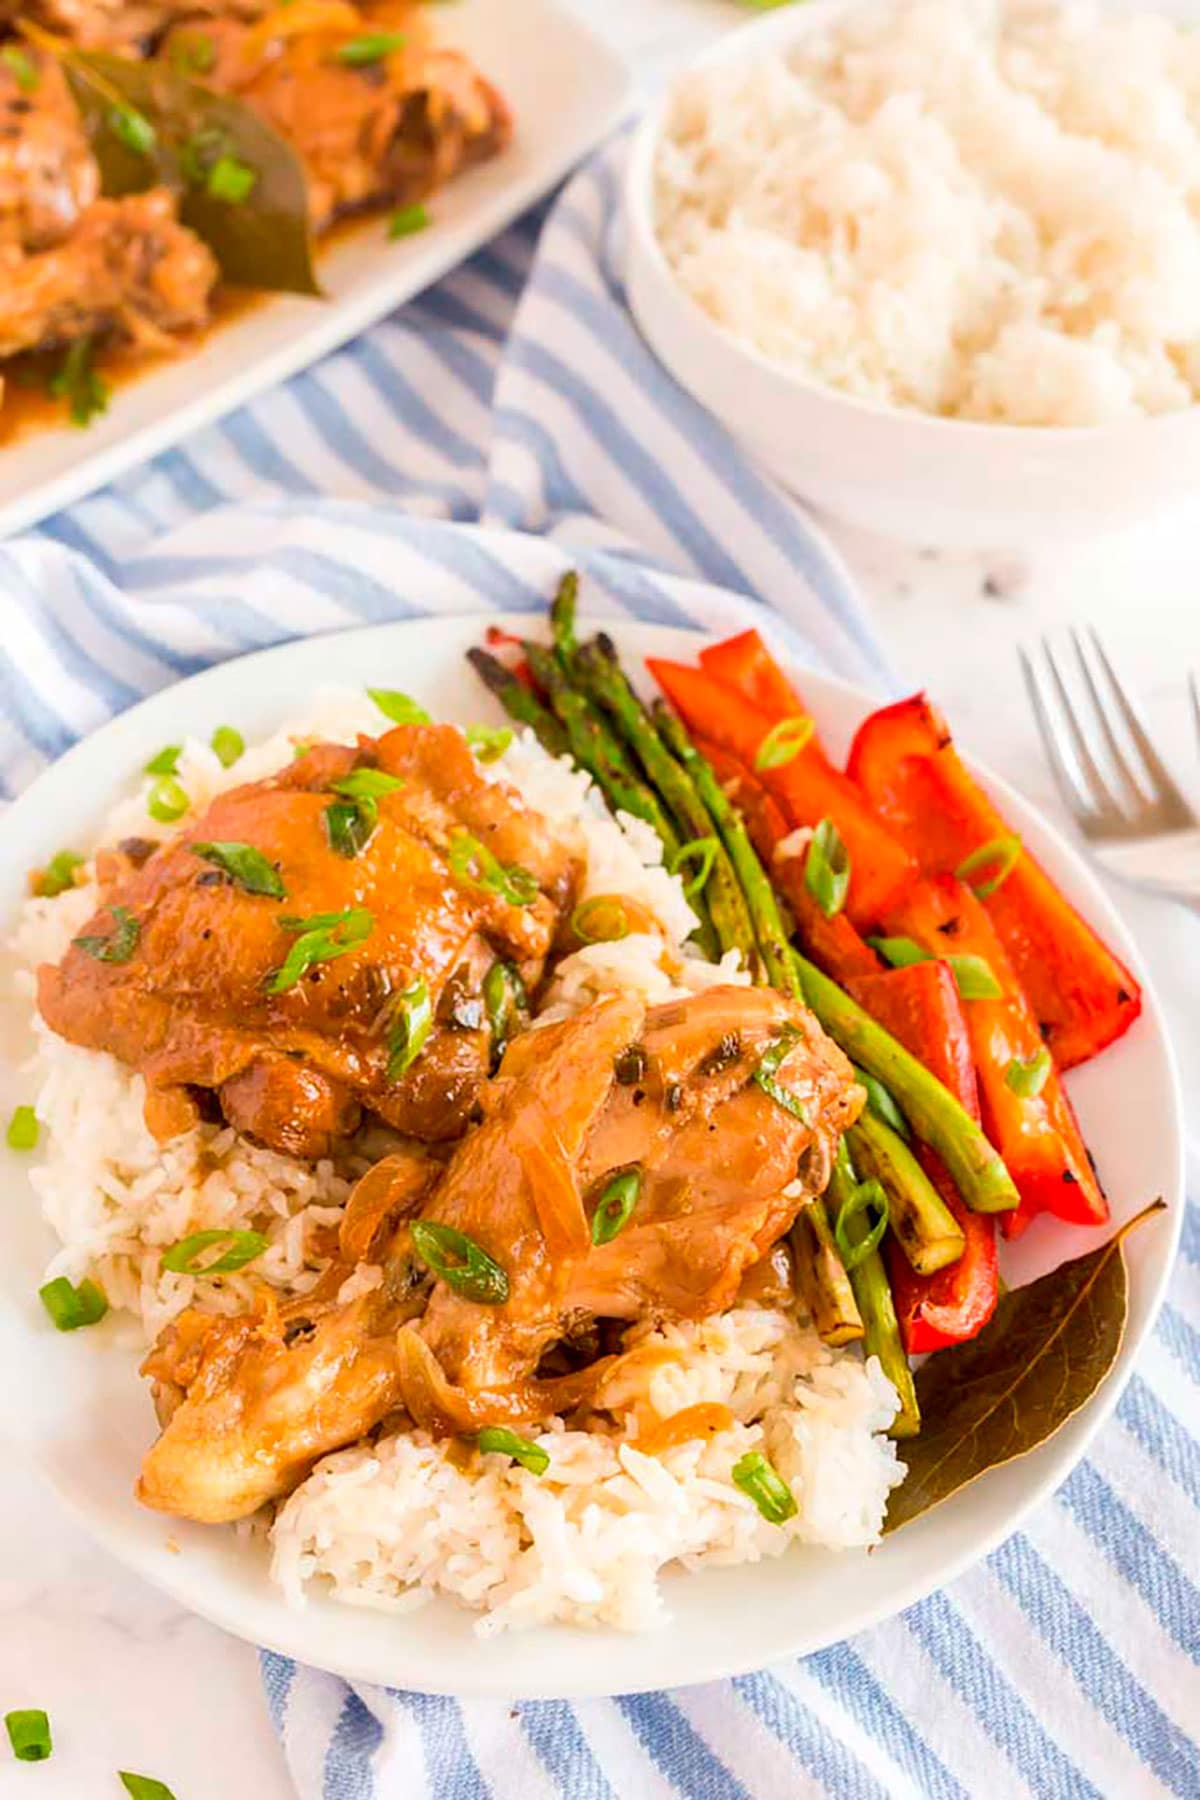 Chicken drumstick and chicken thigh adobo over rice